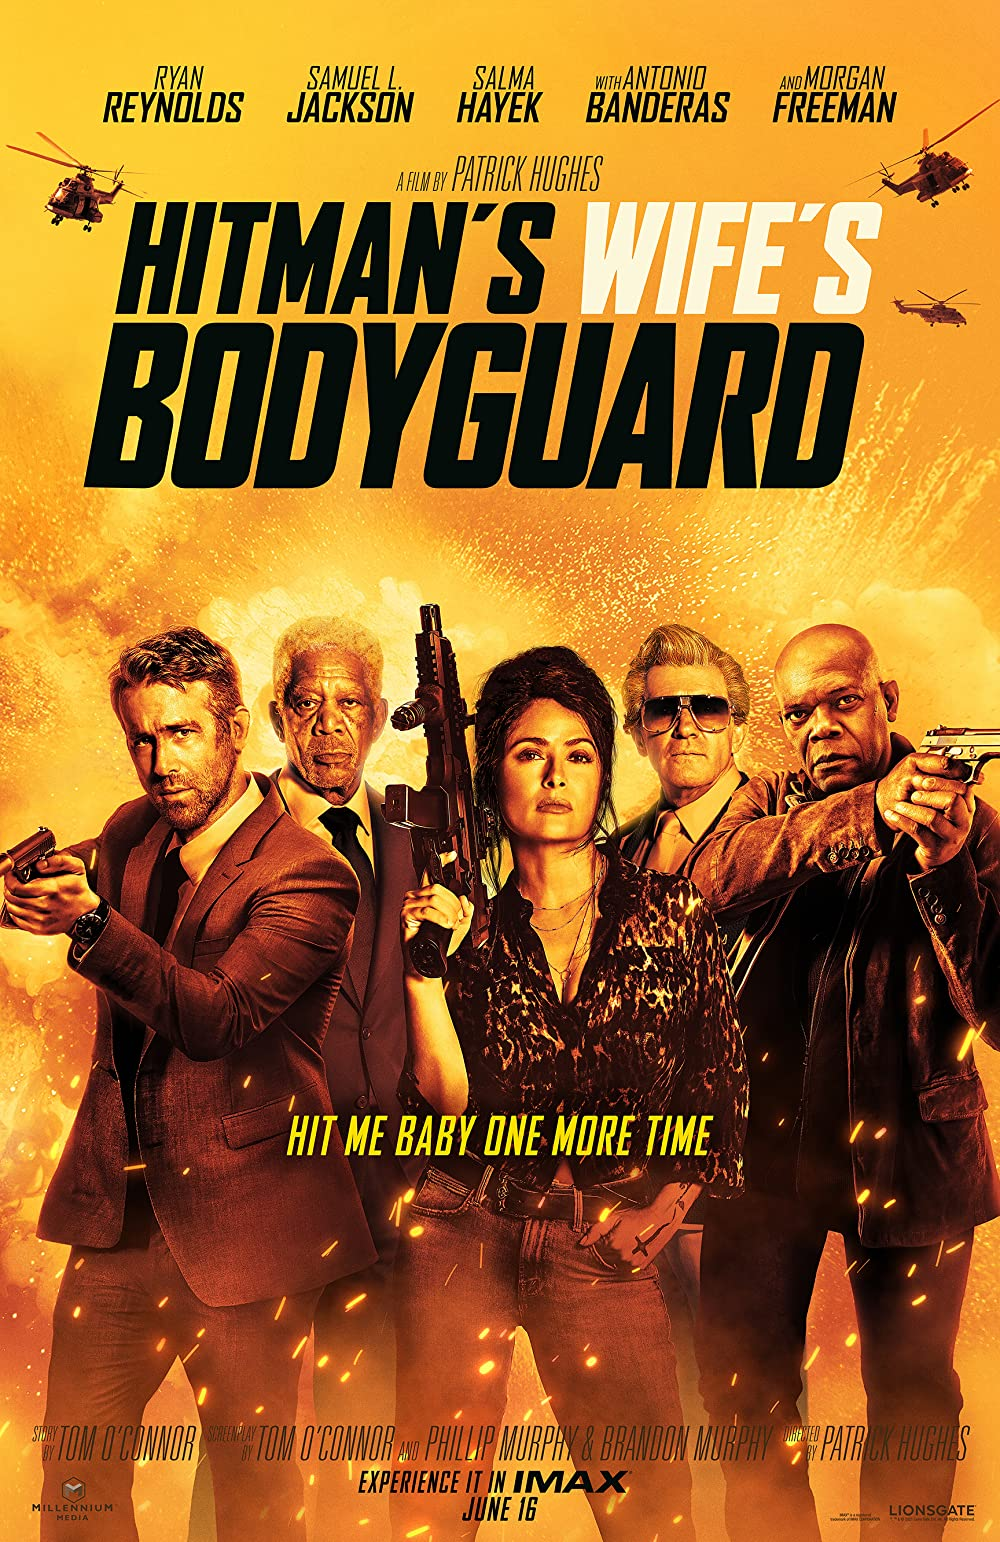 Hitman's Wife's Bodyguard 2021 Hindi Dubbed (Unofficial) 480p HDRip 350MB Download